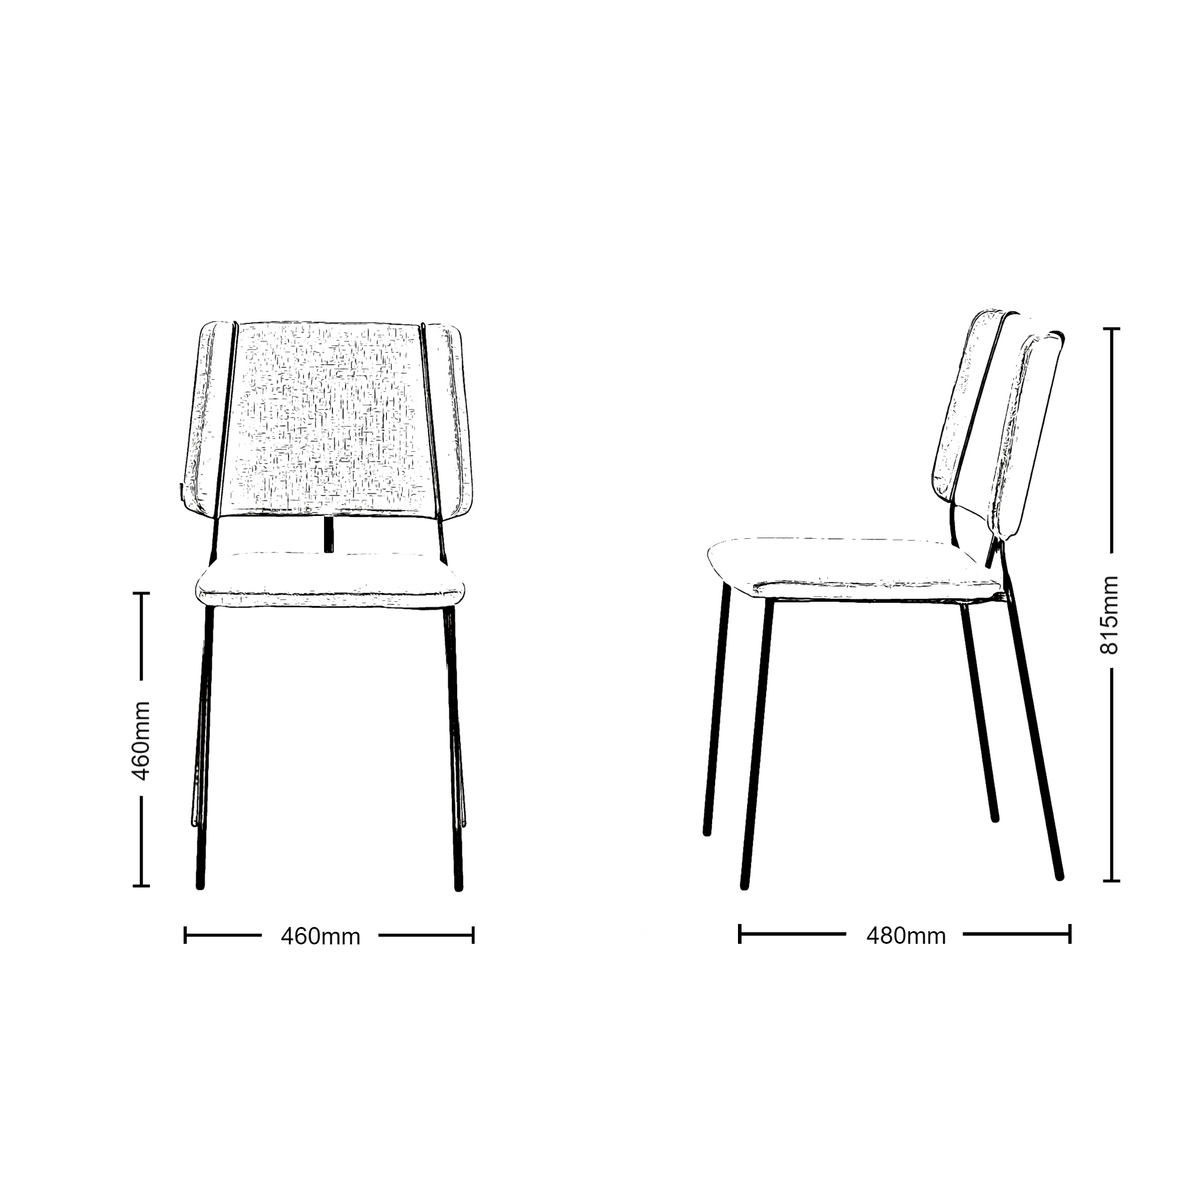 Dimensions for Johanson Design - Frankie Stackable Chair - Set of Four